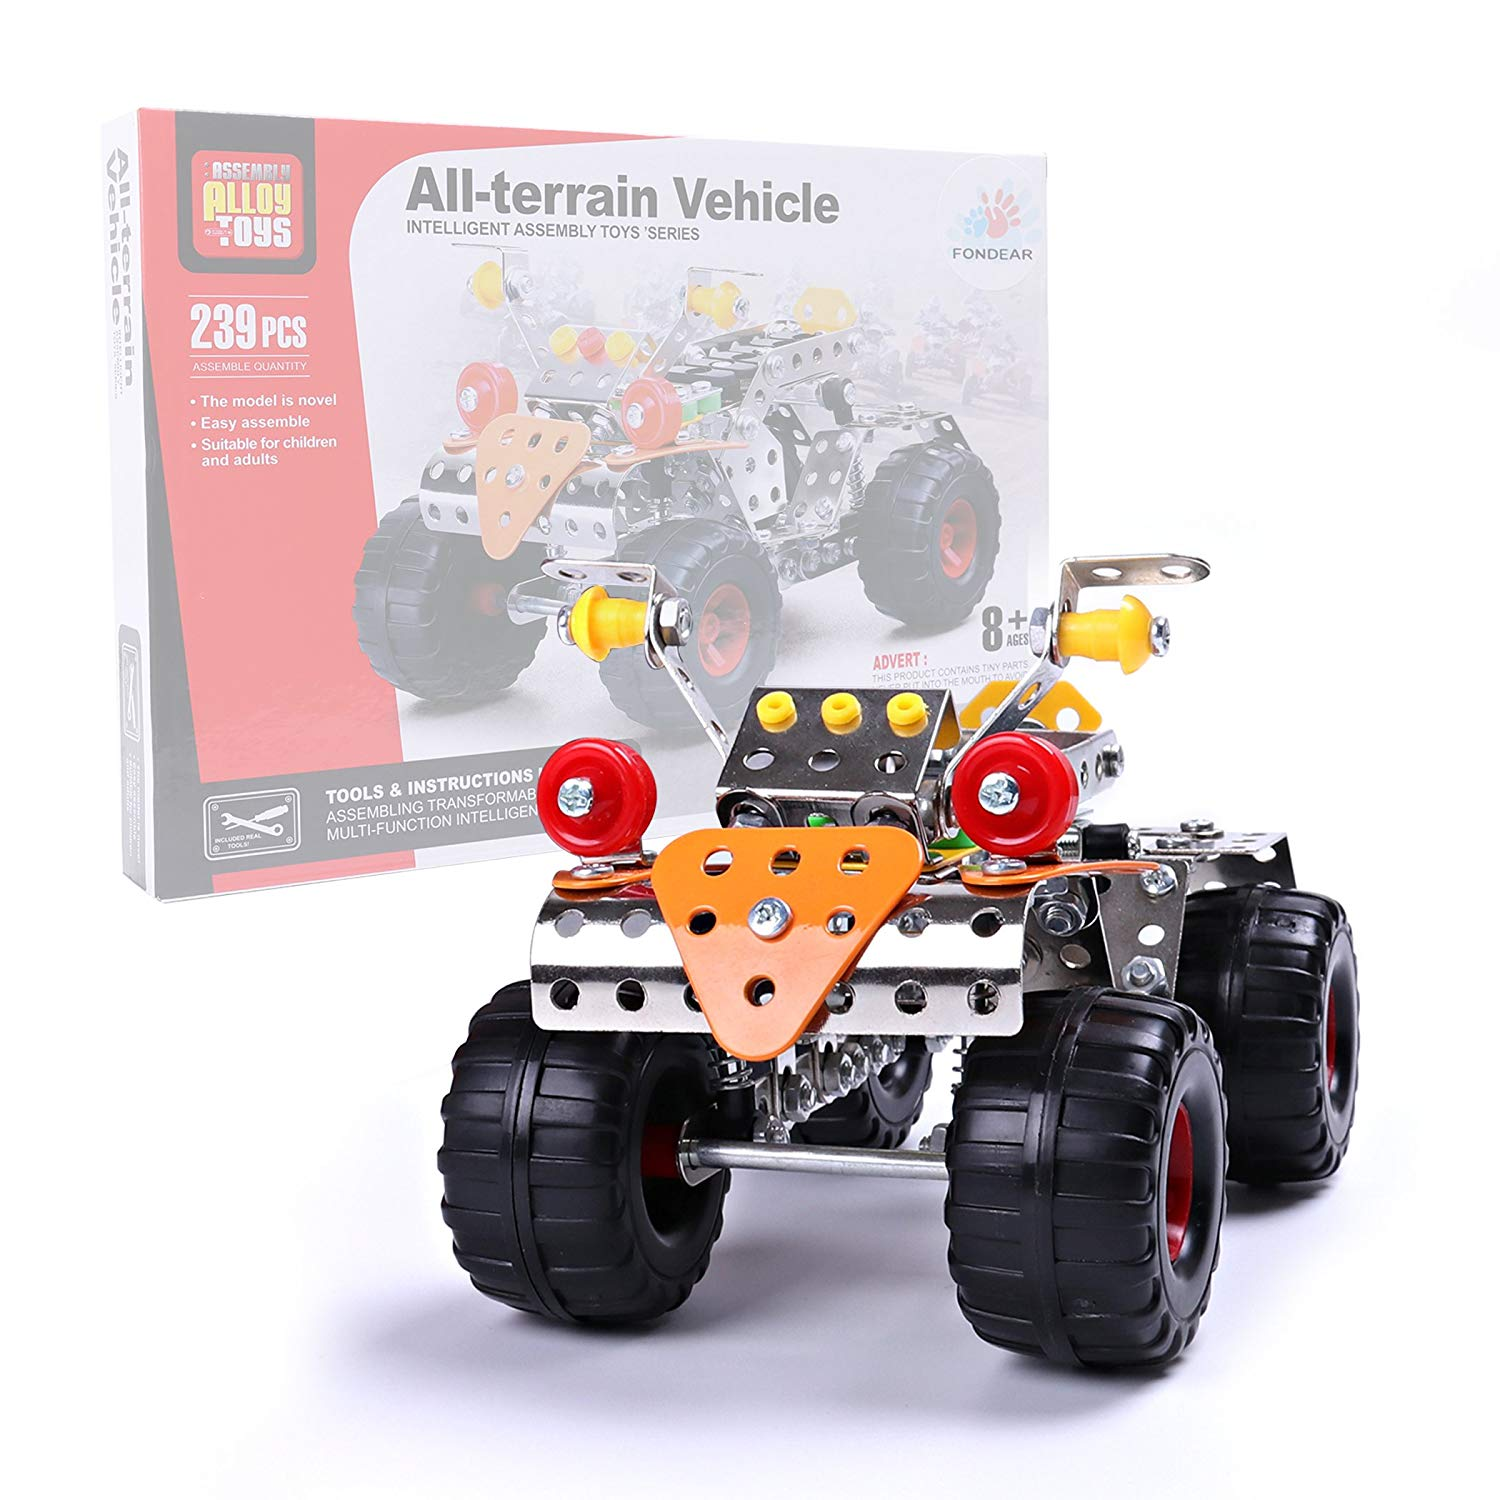 Fondear Children's STEM Learning Toy Vehicle Building Brick Set Off Roader Building Set, Driven by Friction Force, Tutorial Toy for Kids (Off Roader)